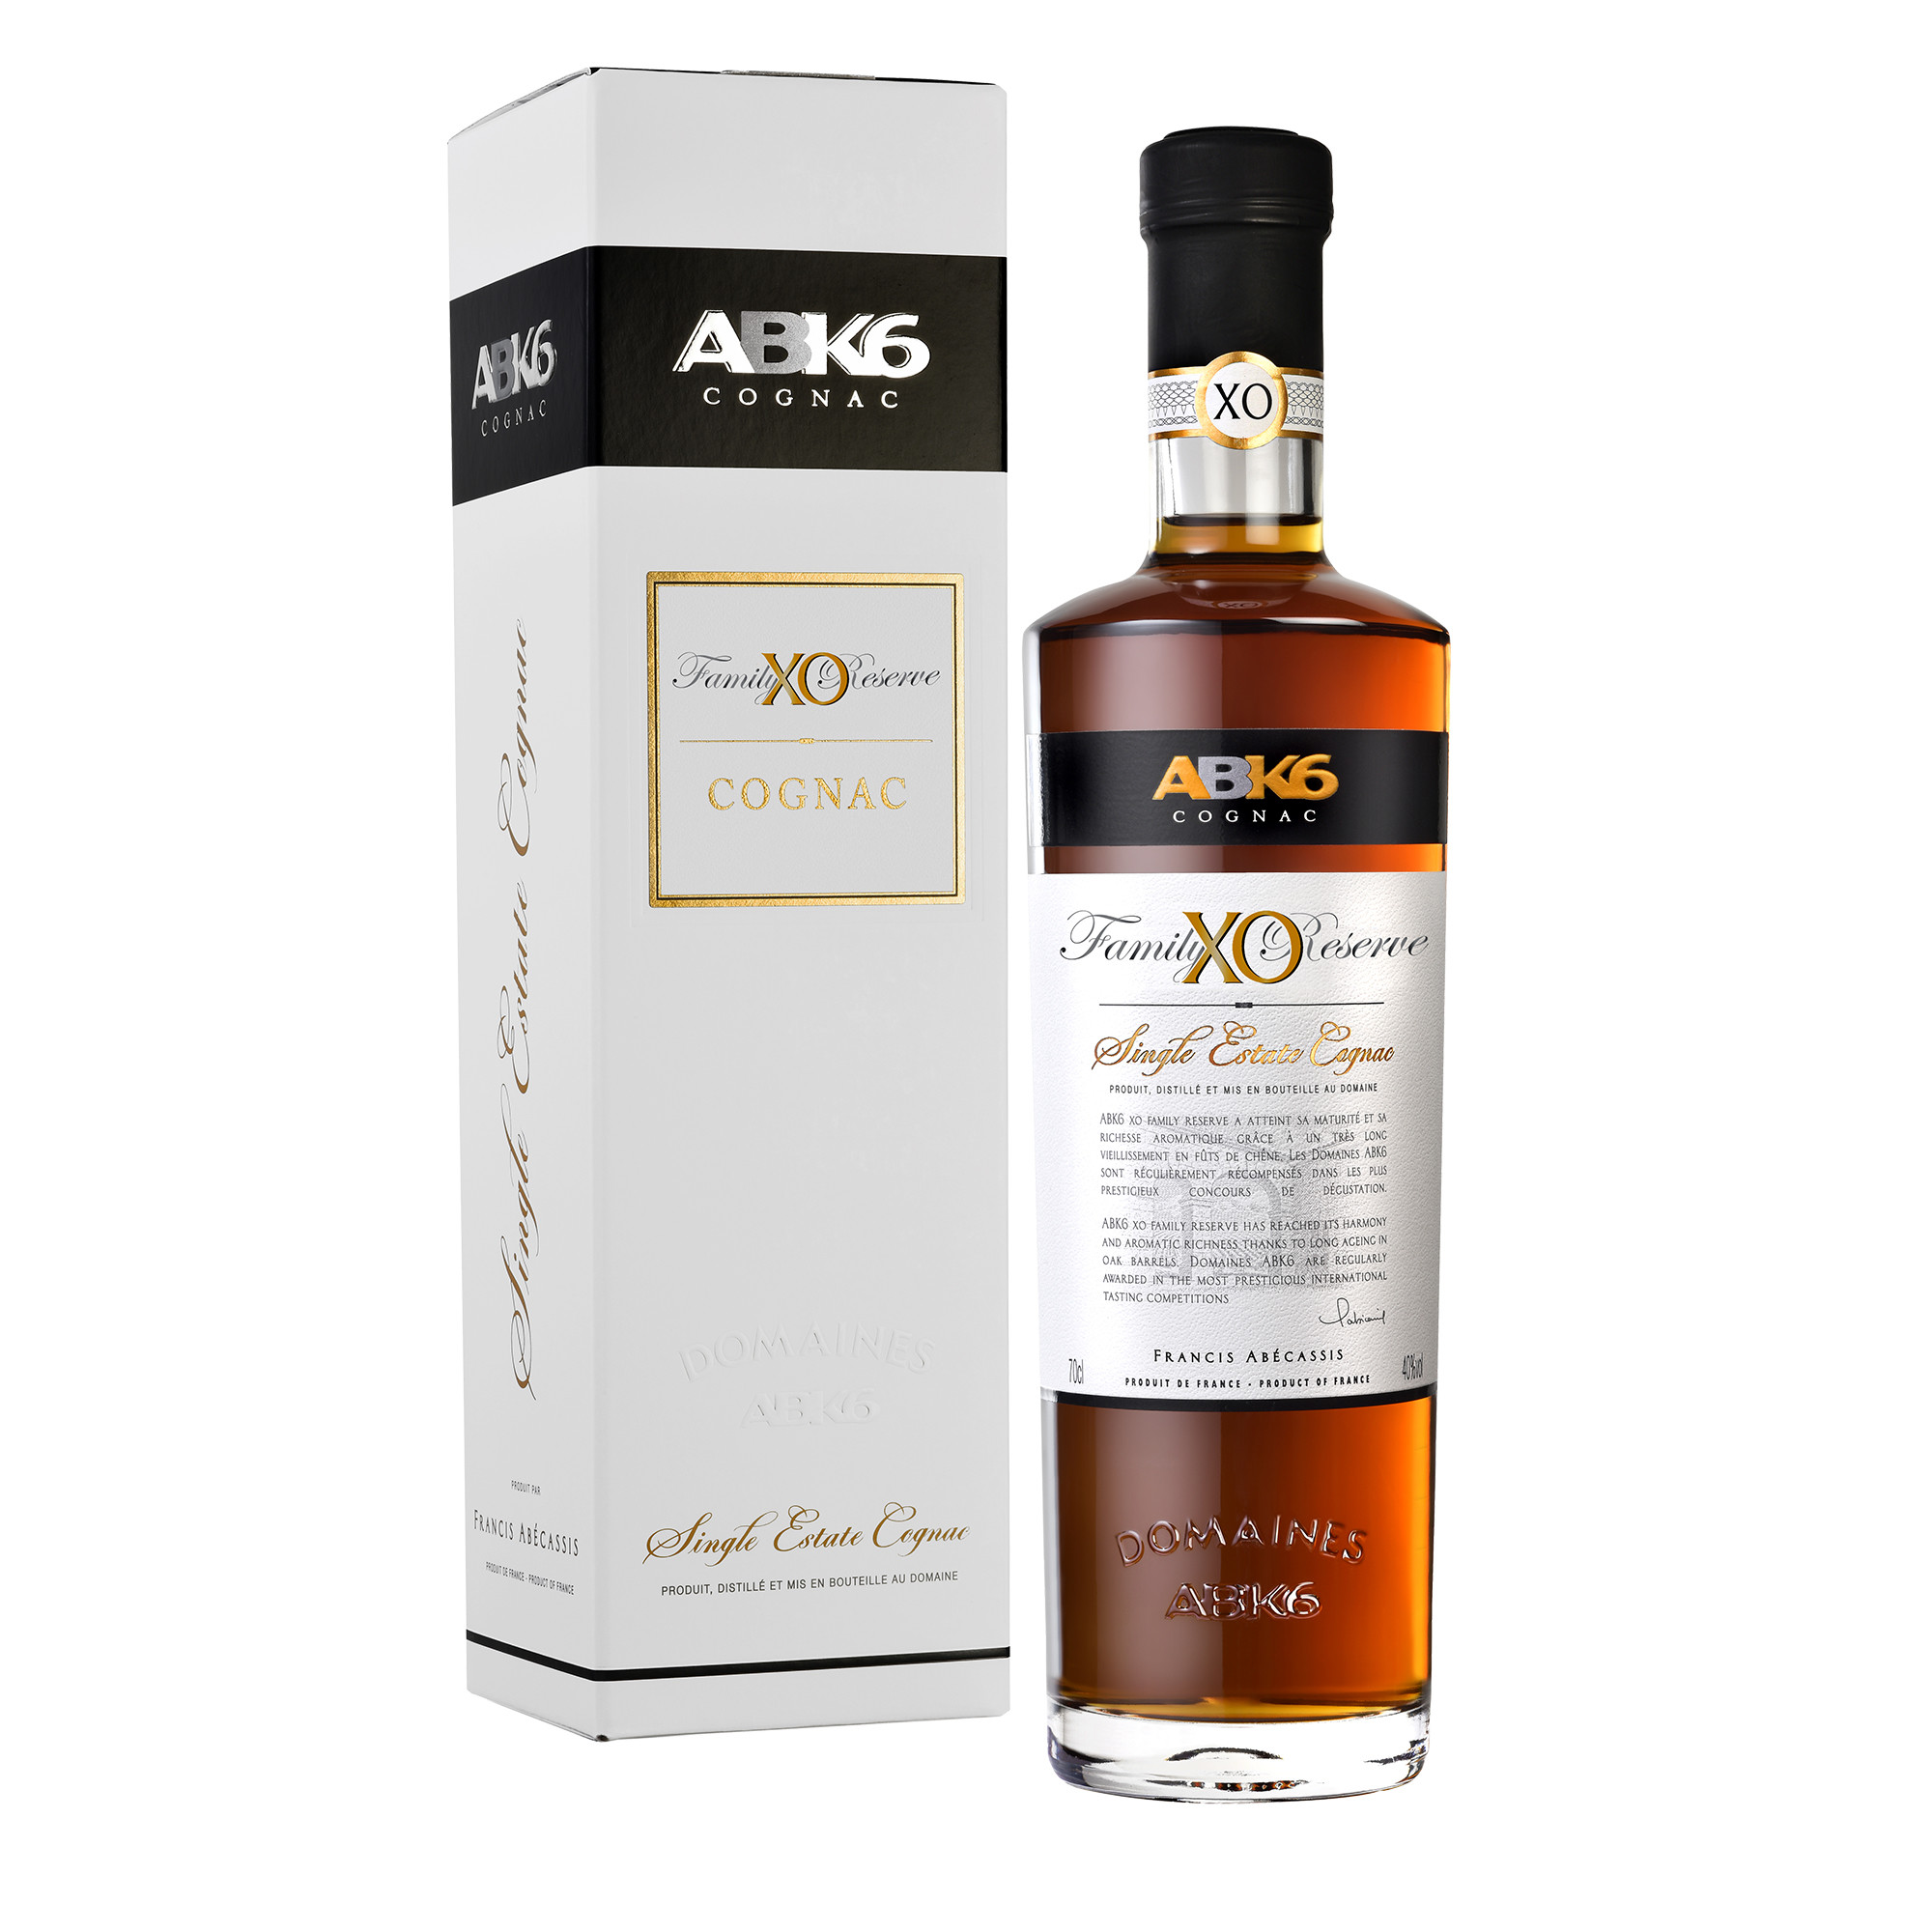 Image of X.O Family Reserve, Cognac - 700 ml